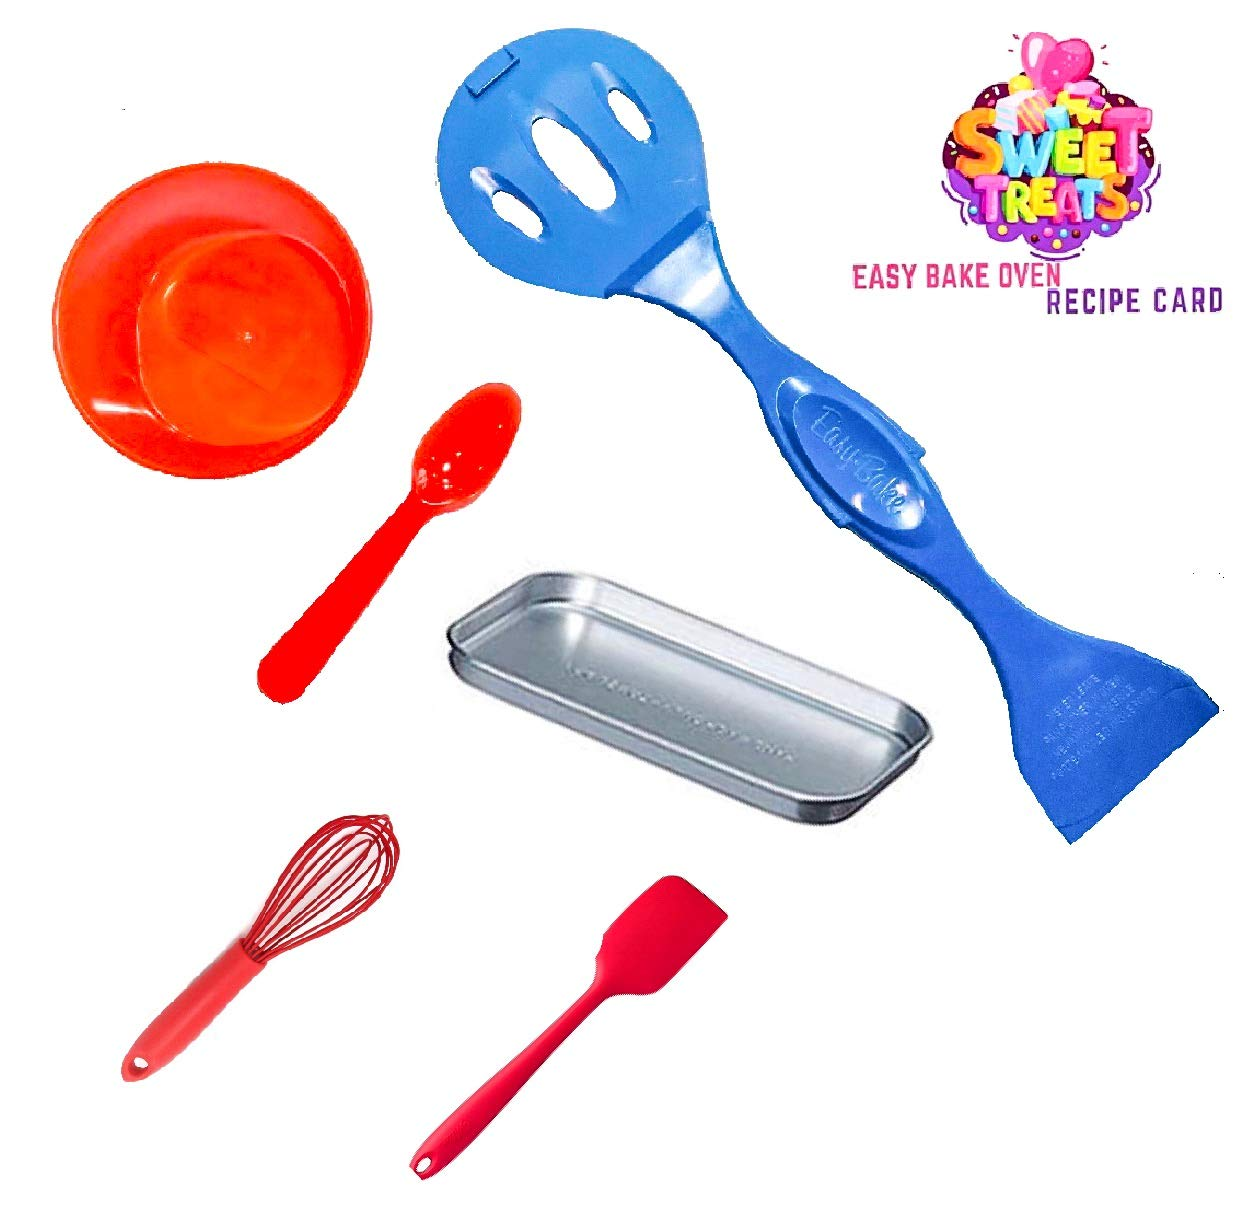 Easy Bake Ultimate Oven Baking Star Edition + 2 Oven Refill Mixes + 2 Sweet Treats Tasty Oven Recipes + Mixing Bowl, Spoon, Spatula, Whisk (8 Total Items) (red) by Easy Bake (Image #7)